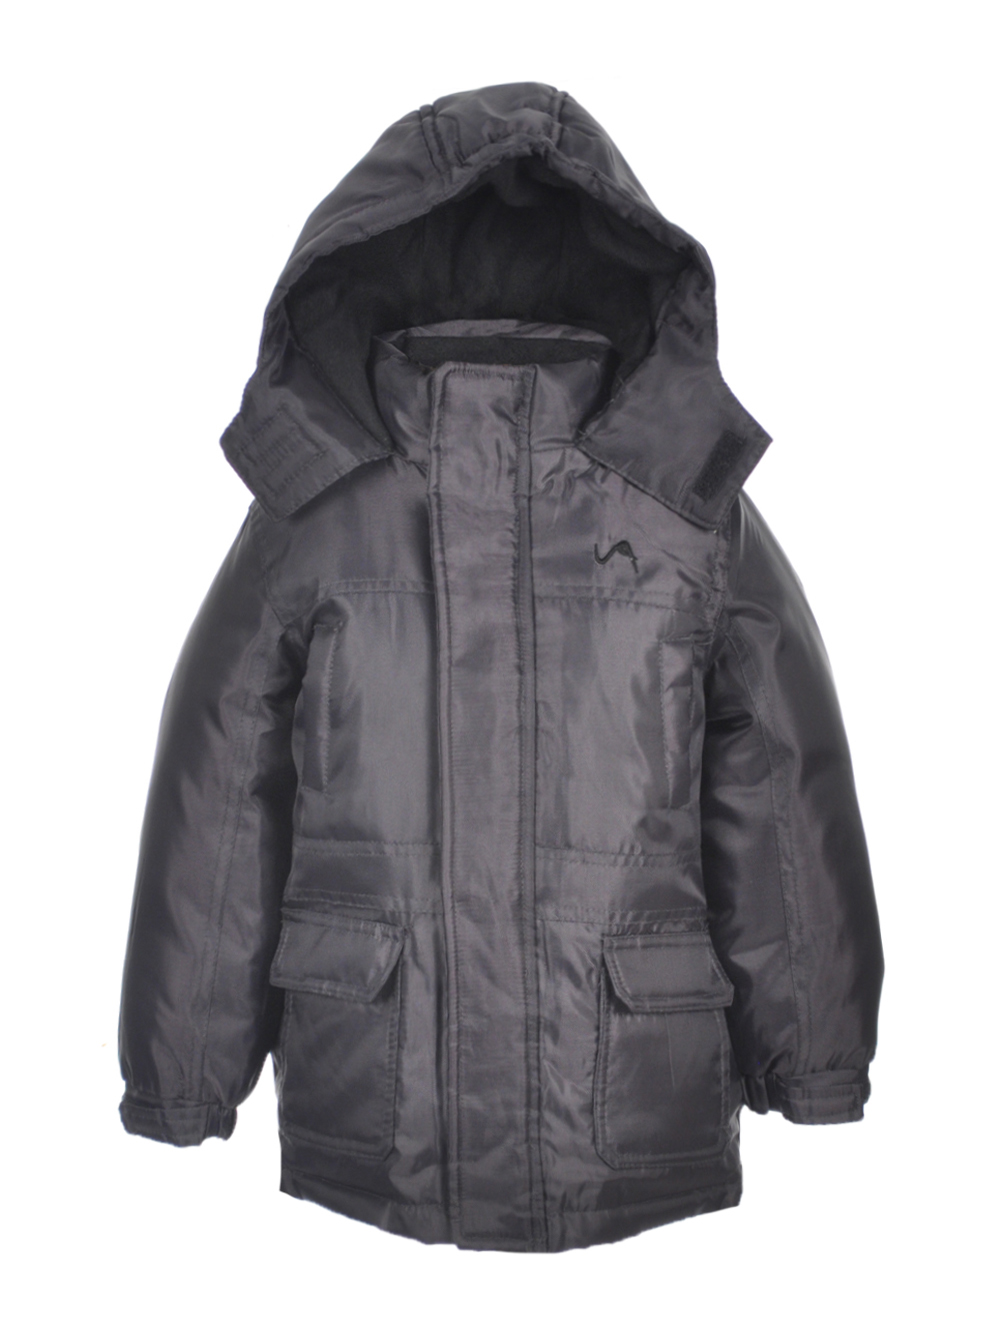 Image of Vertical 9 Little Boys Toddler Winter Stone Insulated Jacket Sizes 2T  4T  charcoal gray 2t